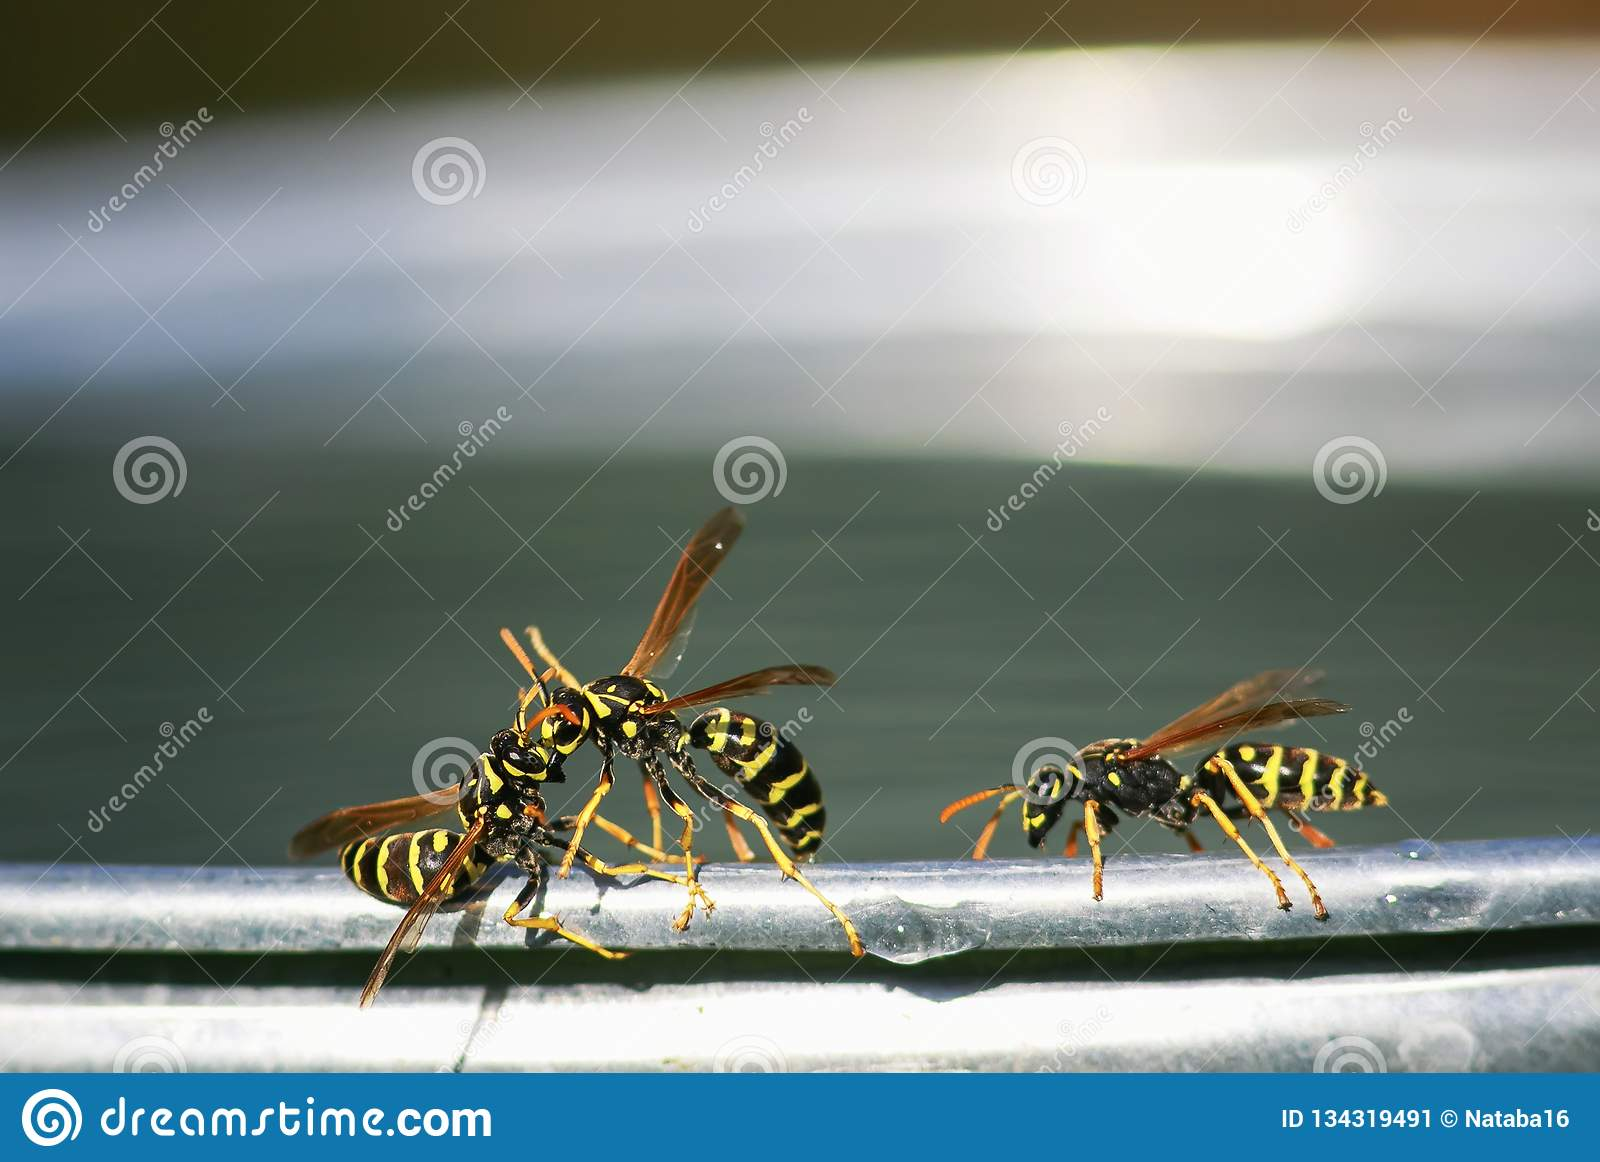 insect wasp flew for water on a metal bucket in the garden and with fighting